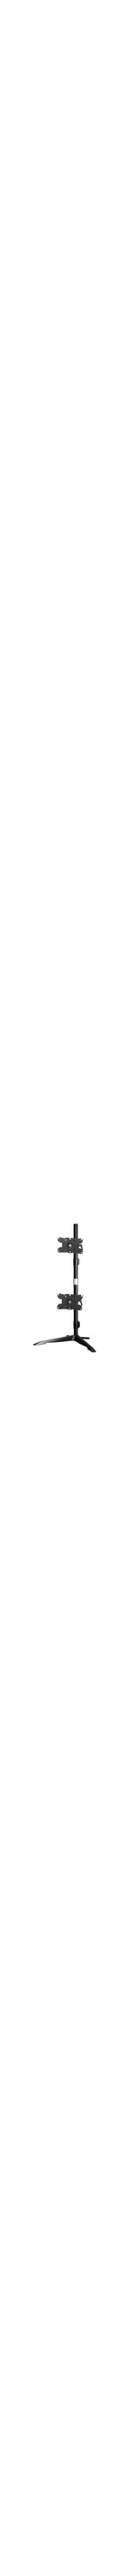 Amer Vertical Display Stand - Up to 32And#34; Screen Support